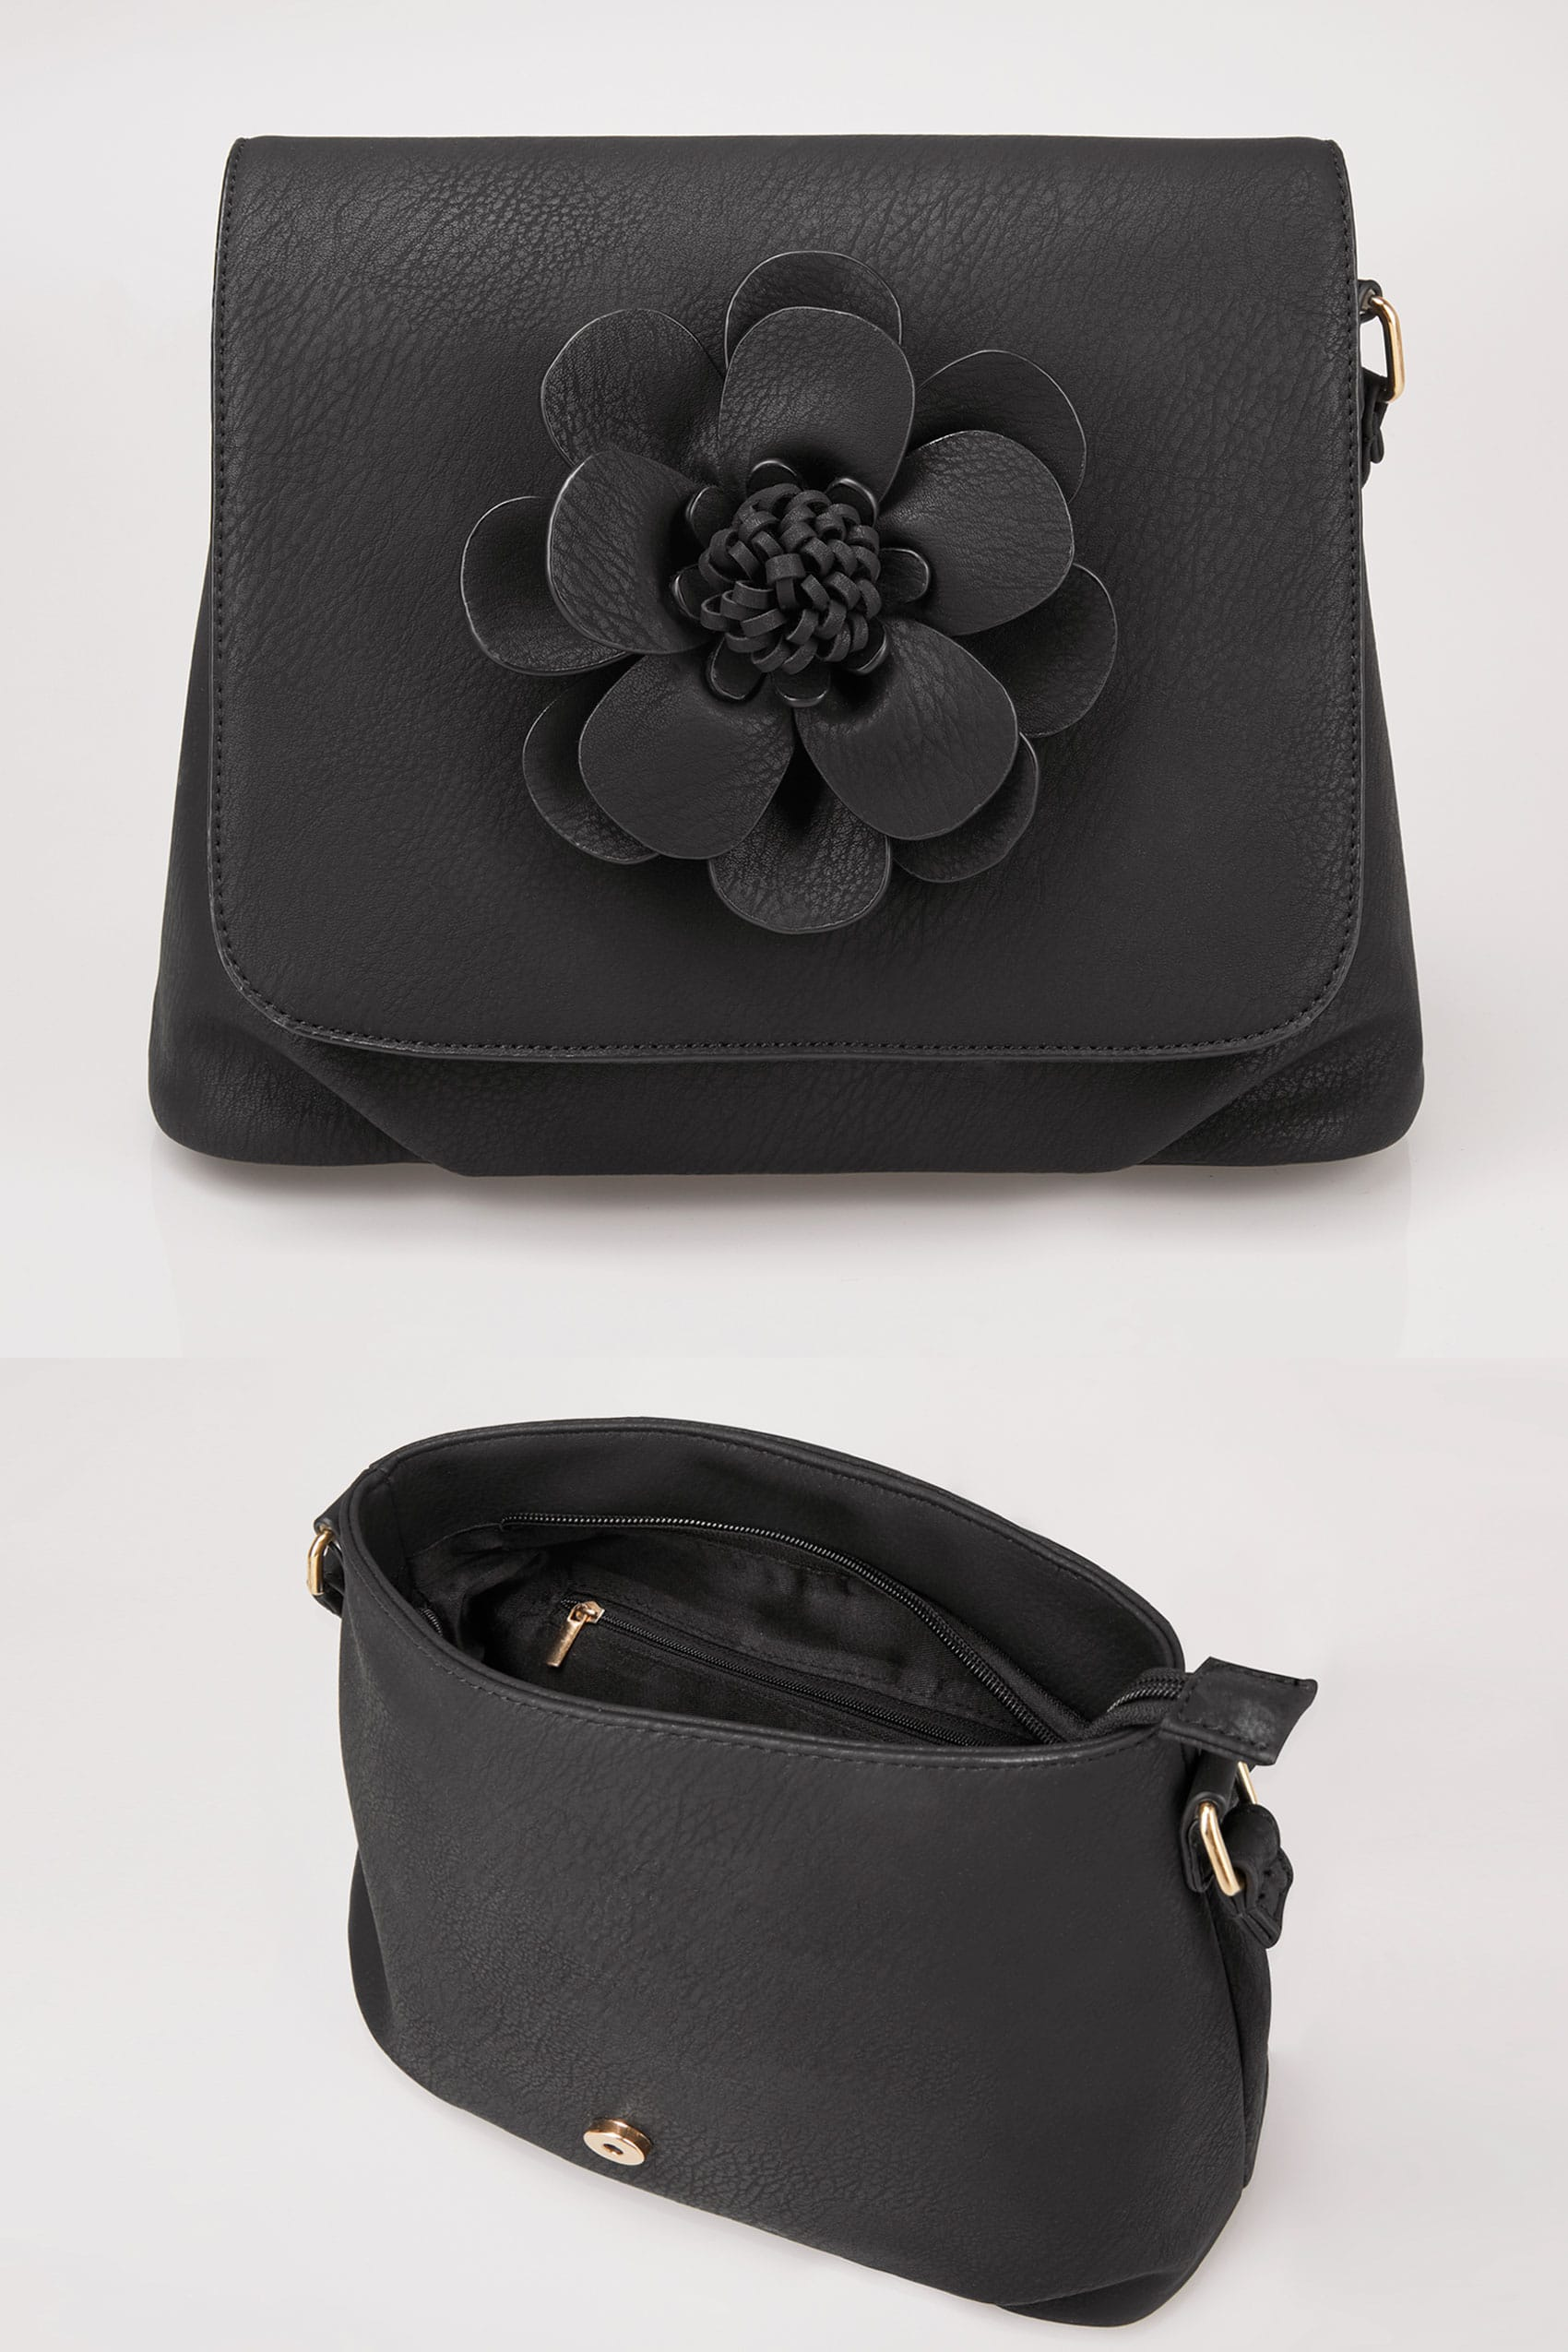 Black applique flower cross body bag for Supermarket bag packing letter template